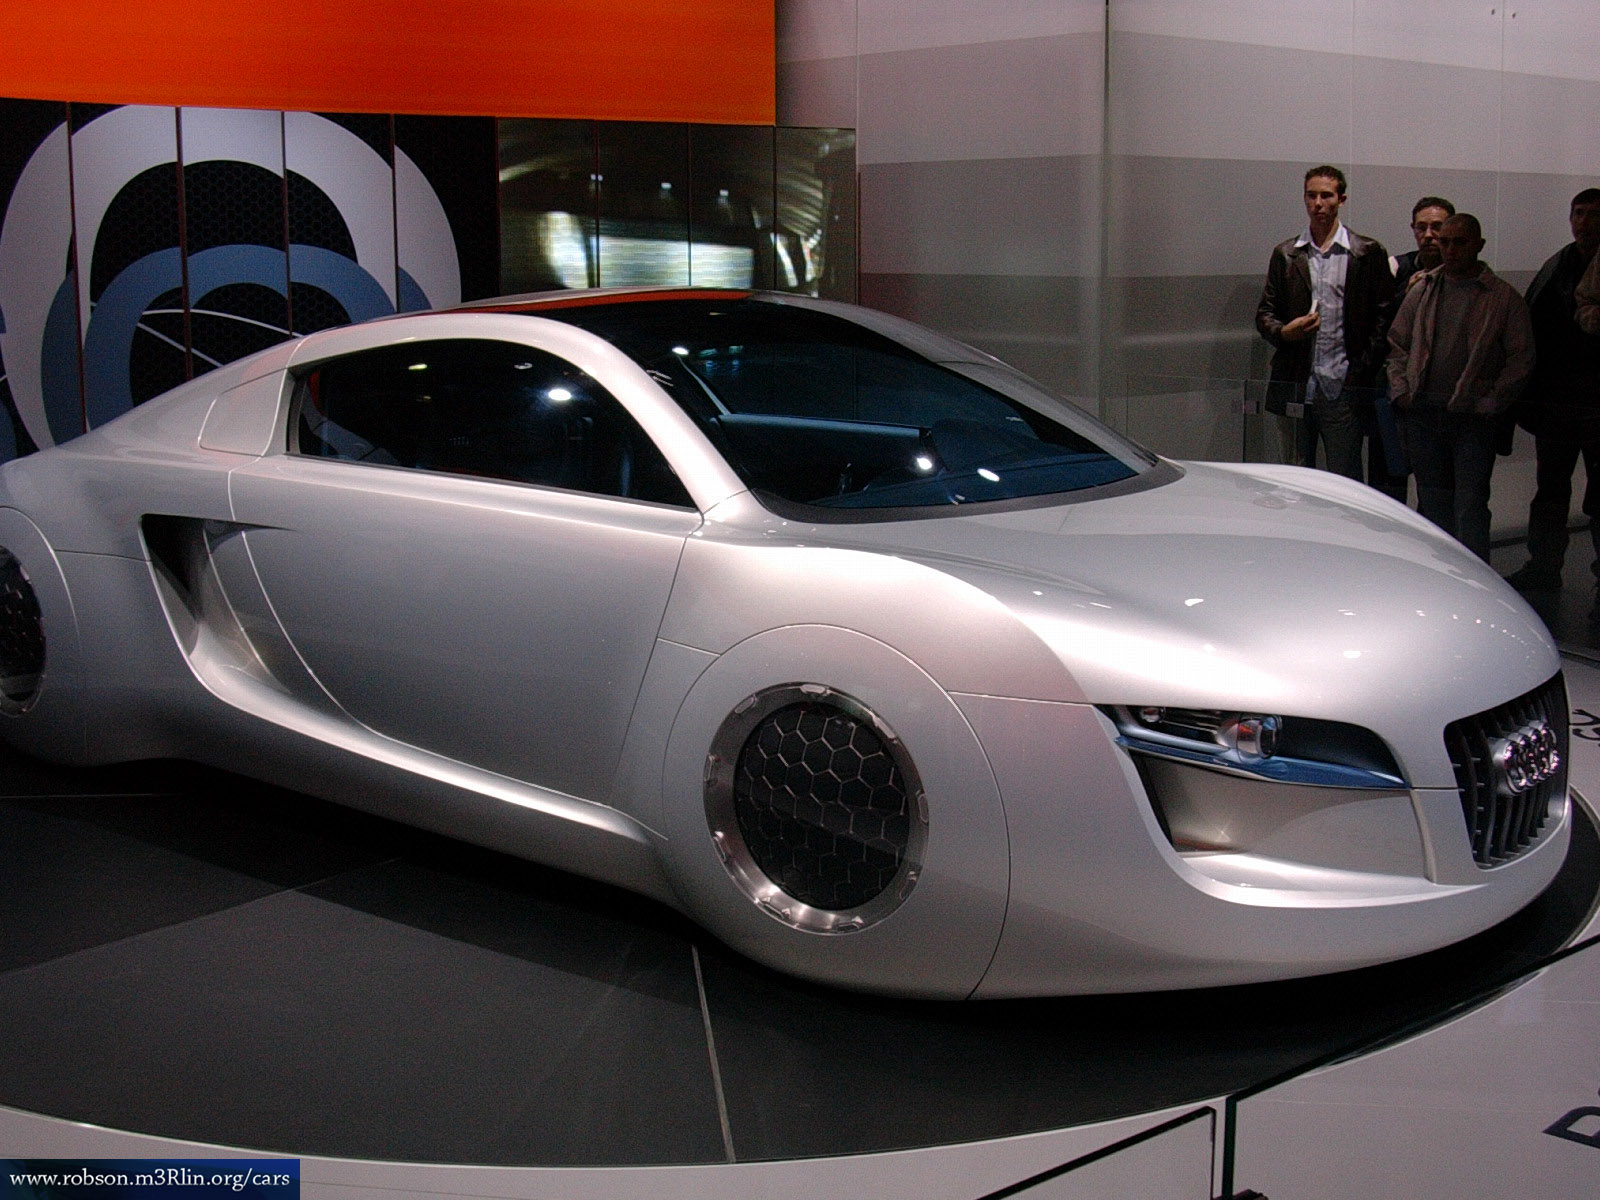 audi-concept-car-i-robot-01-copy.jpg